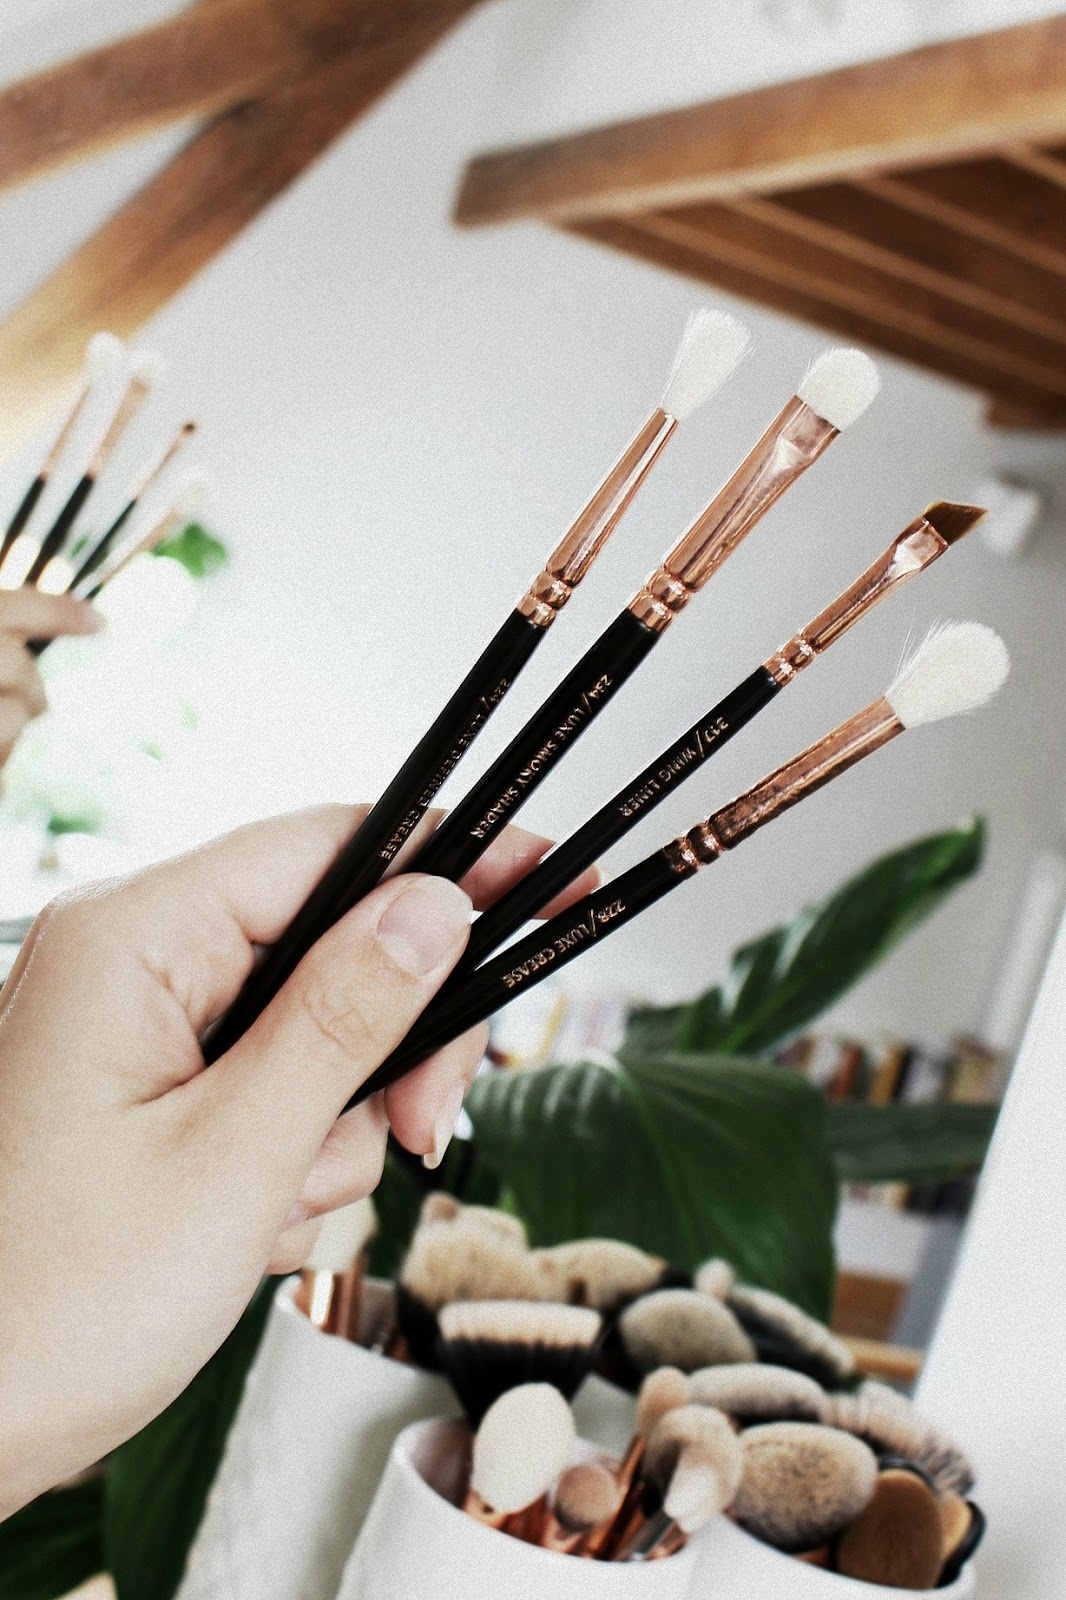 Best Makeup Brushes For Hooded Eyes